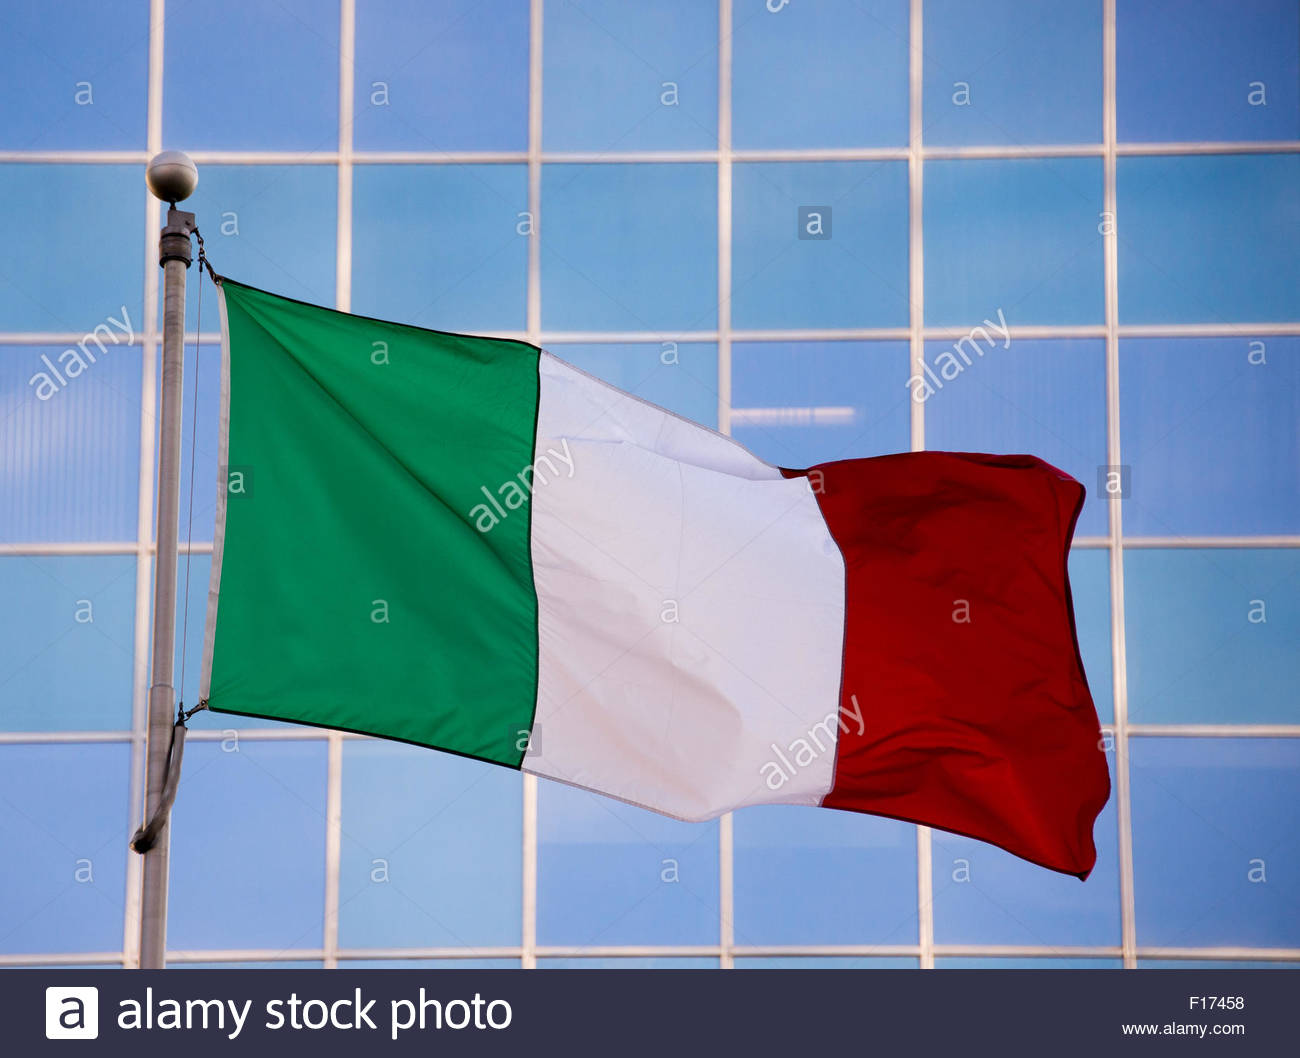 National flag of Italy. It is a tricolor featuring three equally sized vertical pales of green, white, and red, Stock Photo